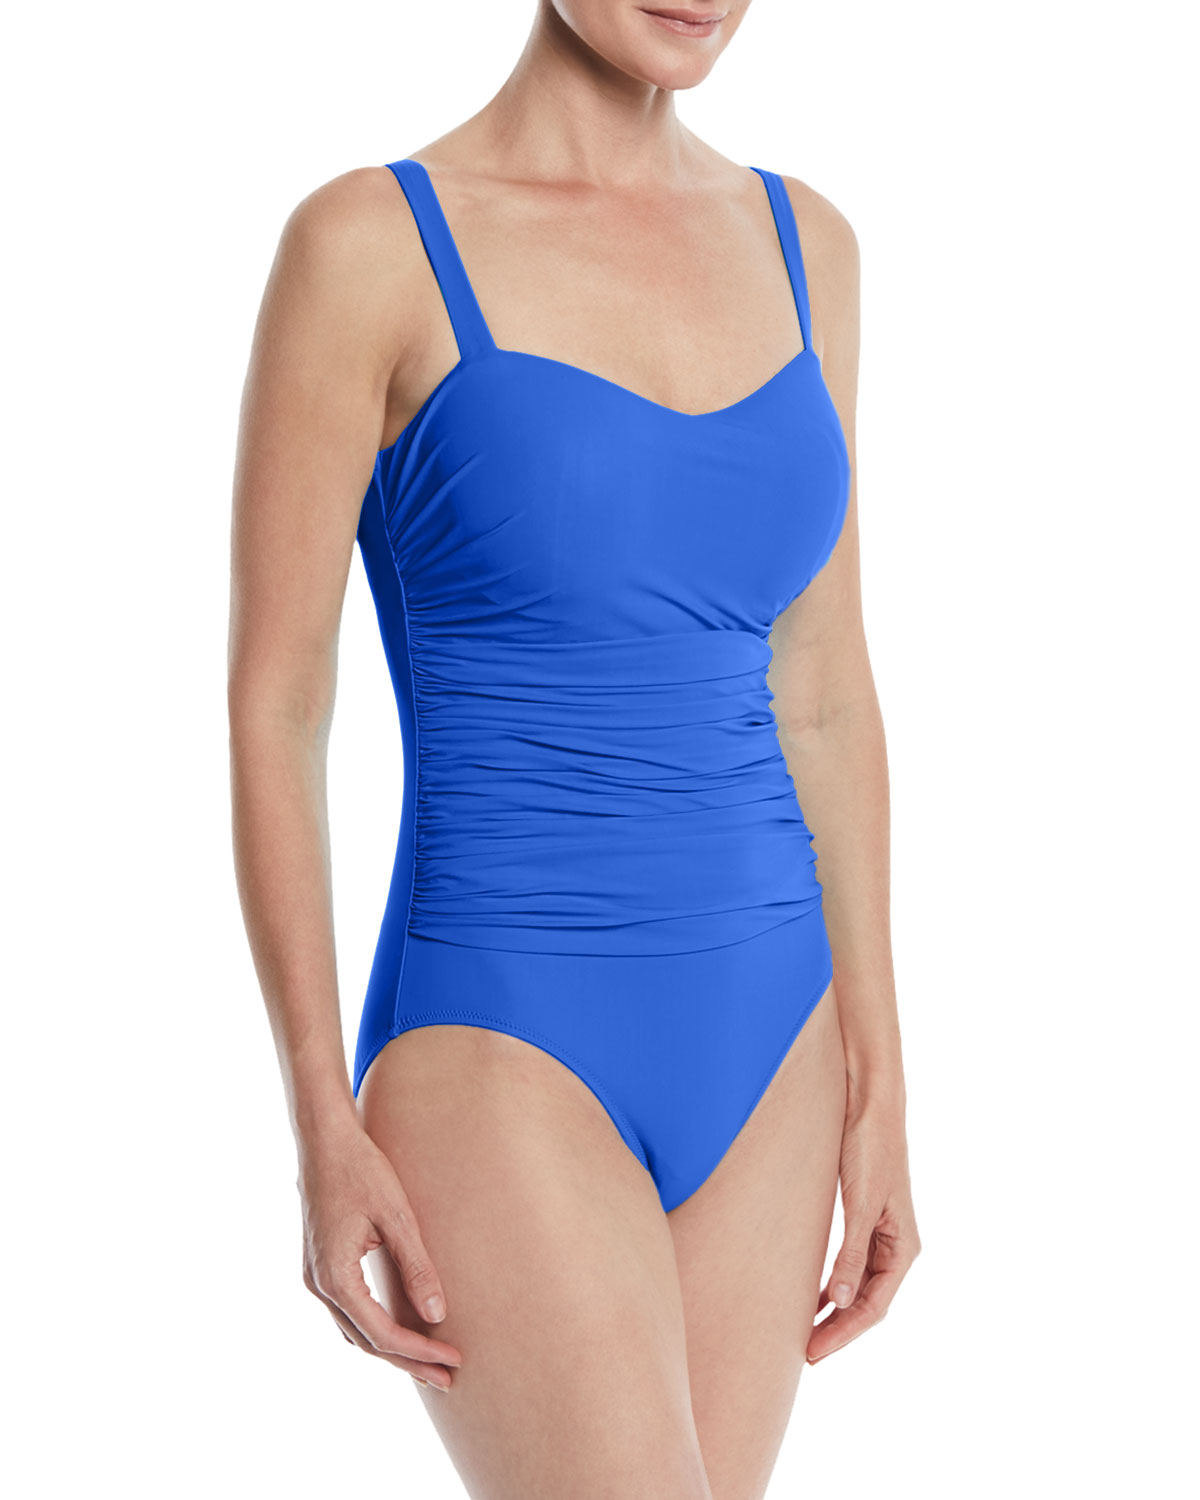 PROFILE BY GOTTEX Tutti Frutti Ruched One-Piece Swimsuit (D Cup) in Blue